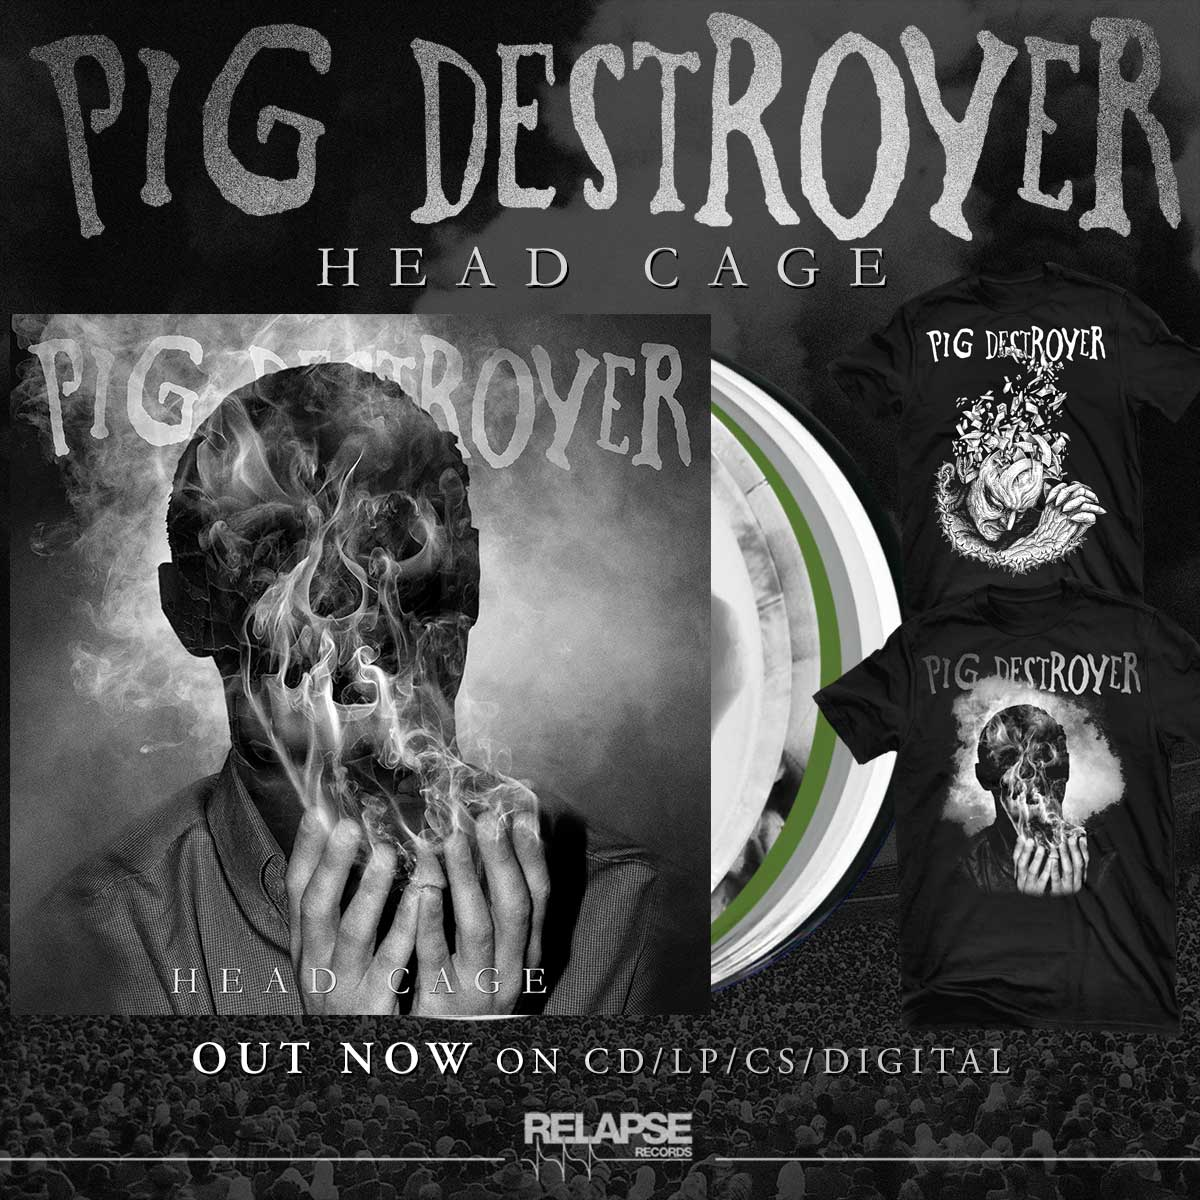 pig-destroyer-head-cage-out-now